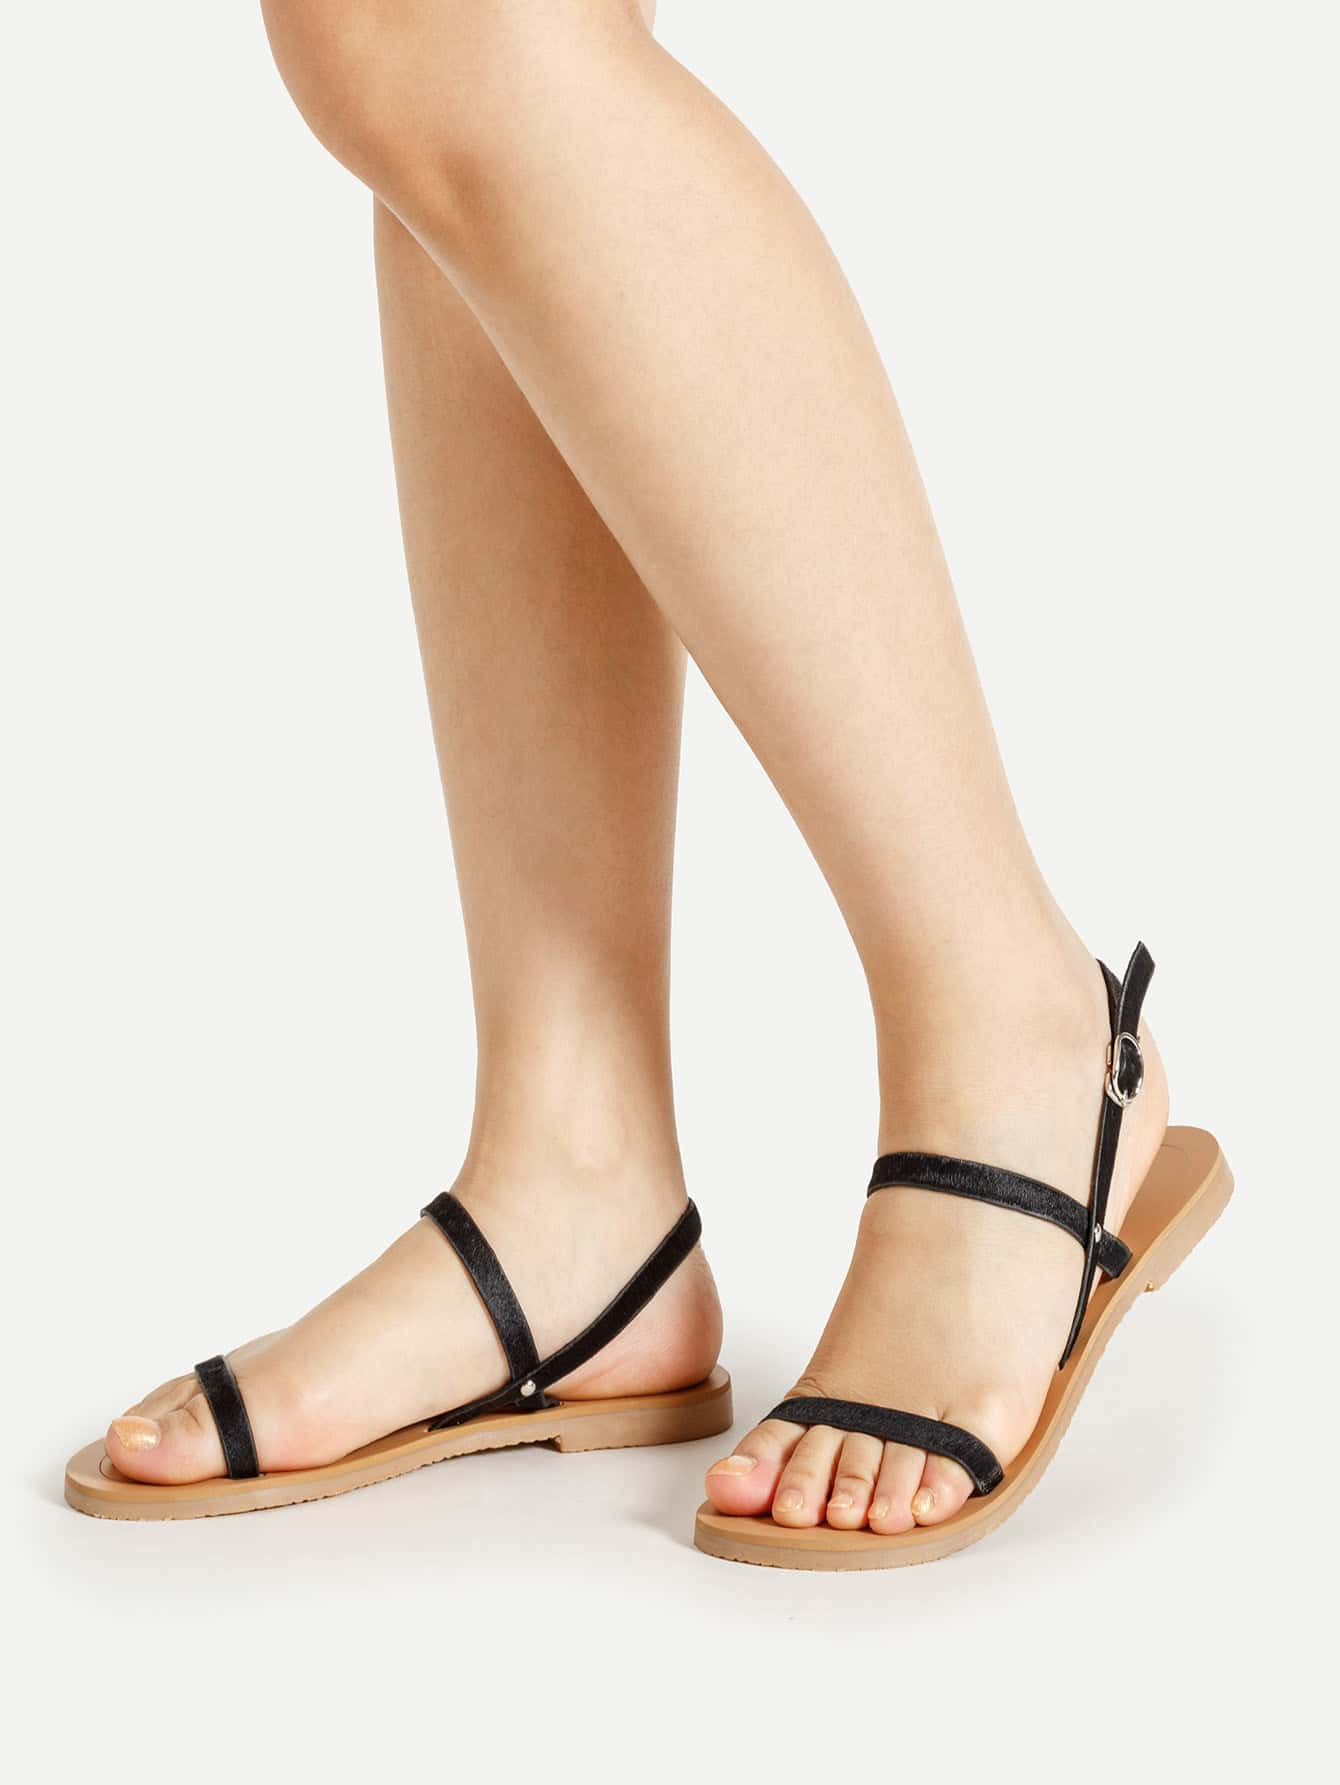 Find High Heel Black Strappy Sandals, Low Heel Black Strappy Sandals and Mid Heel Black Strappy Sandals at Macy's. Macy's Presents: The Edit - A curated mix of fashion and inspiration Check It Out Free Shipping with $75 purchase + Free Store Pickup.